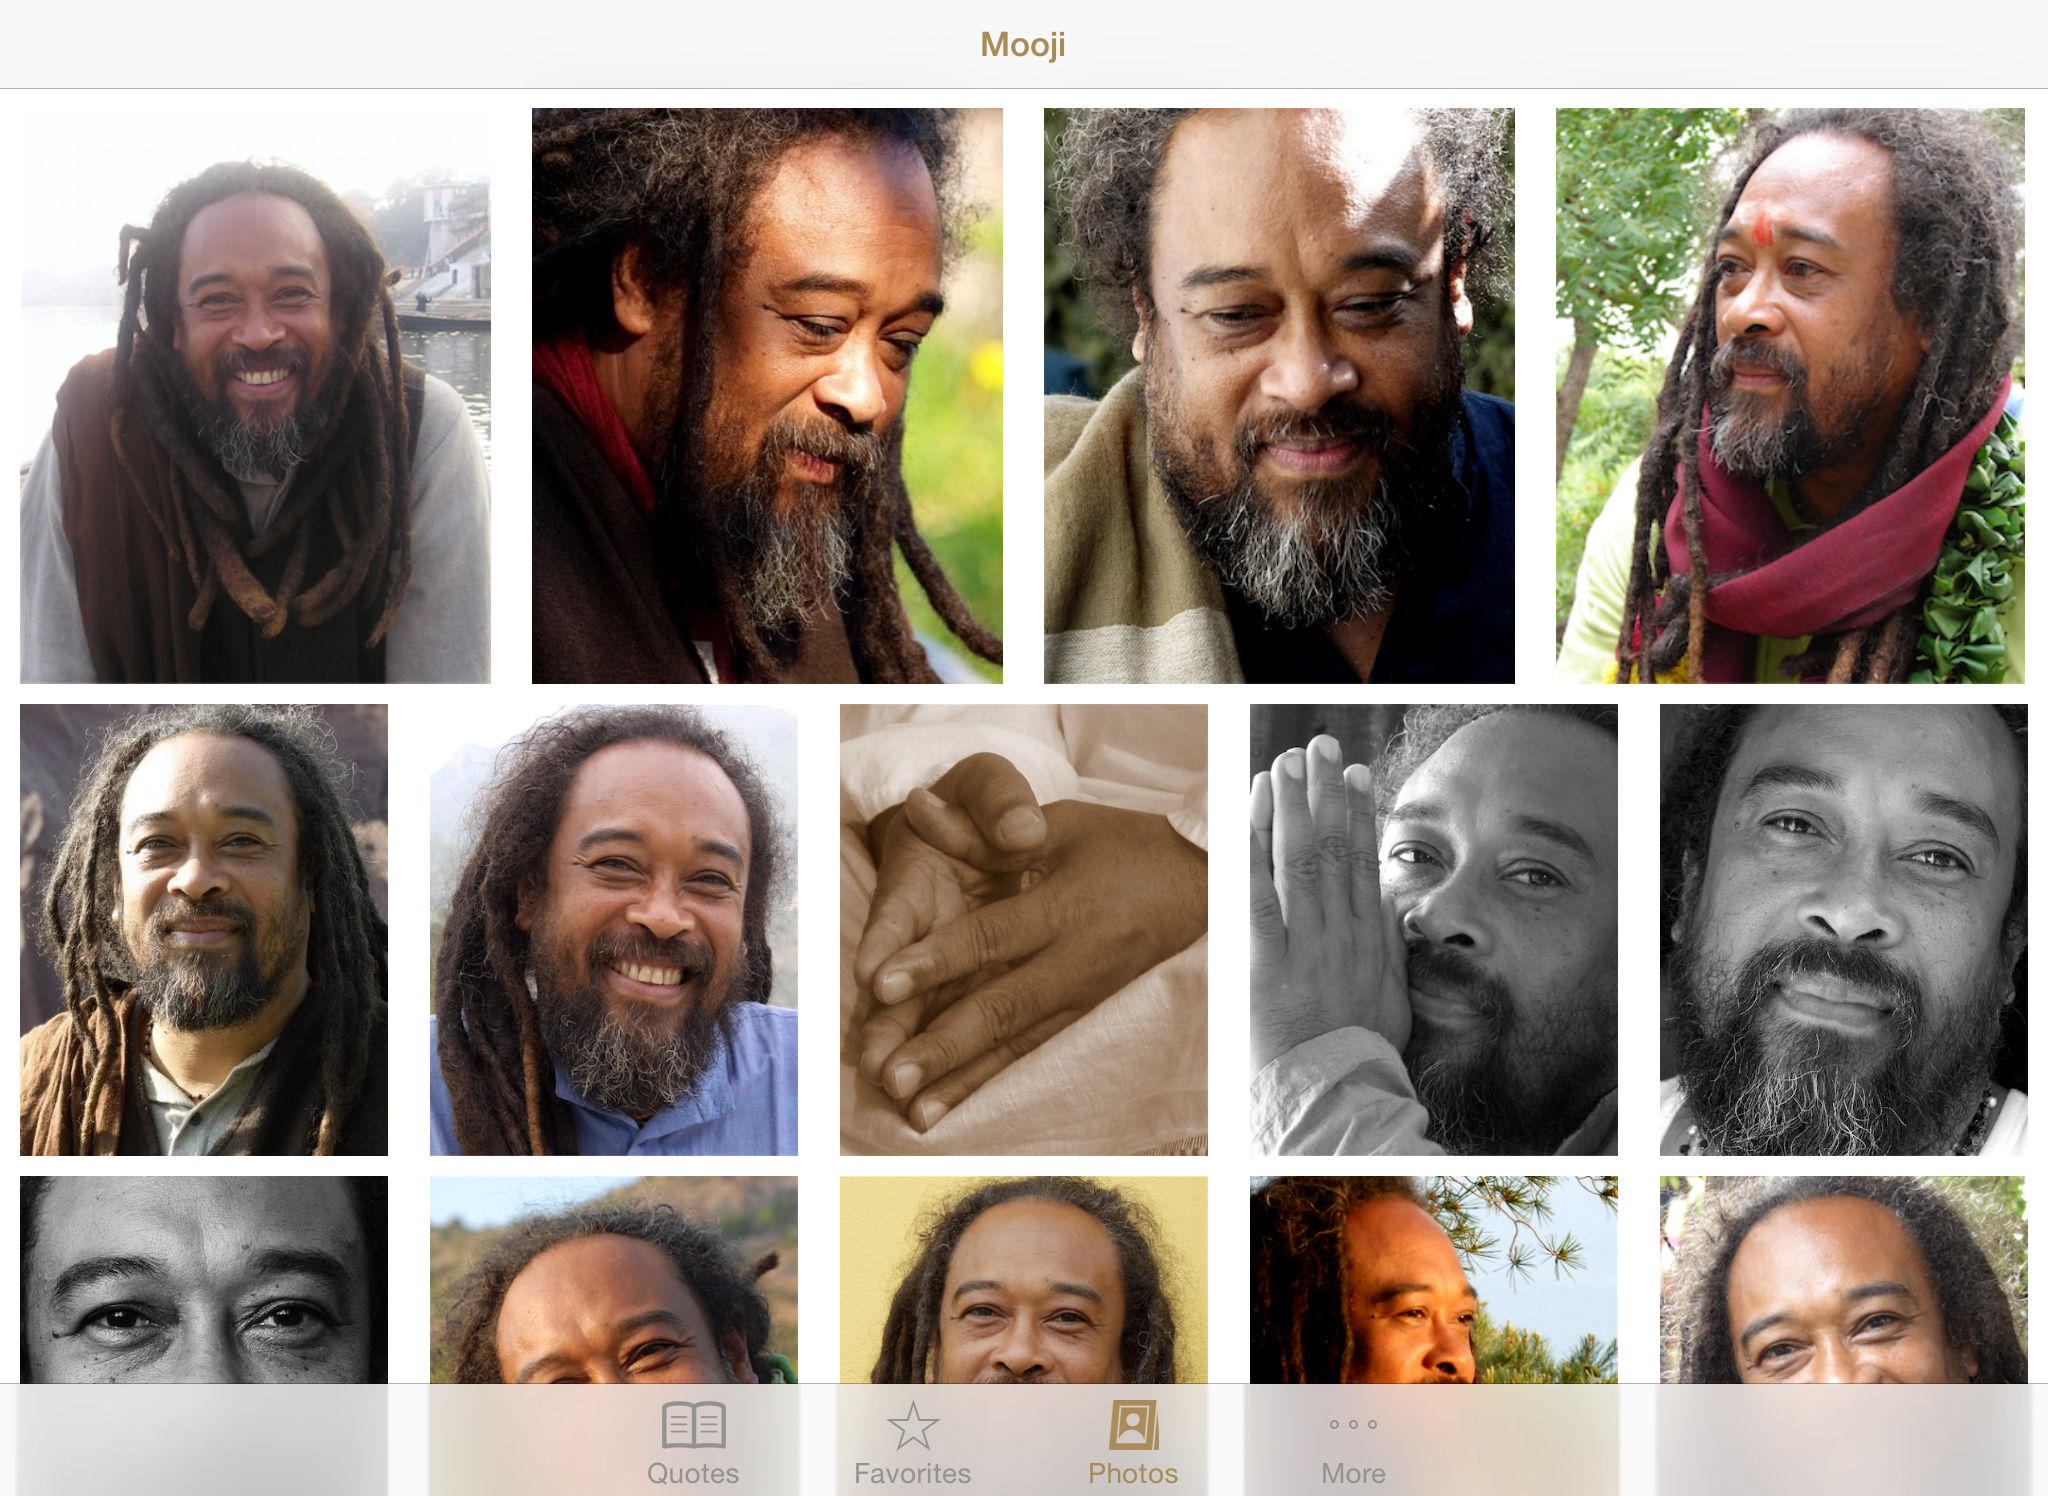 Mooji Quotes App Ranking and Store Data | App Annie